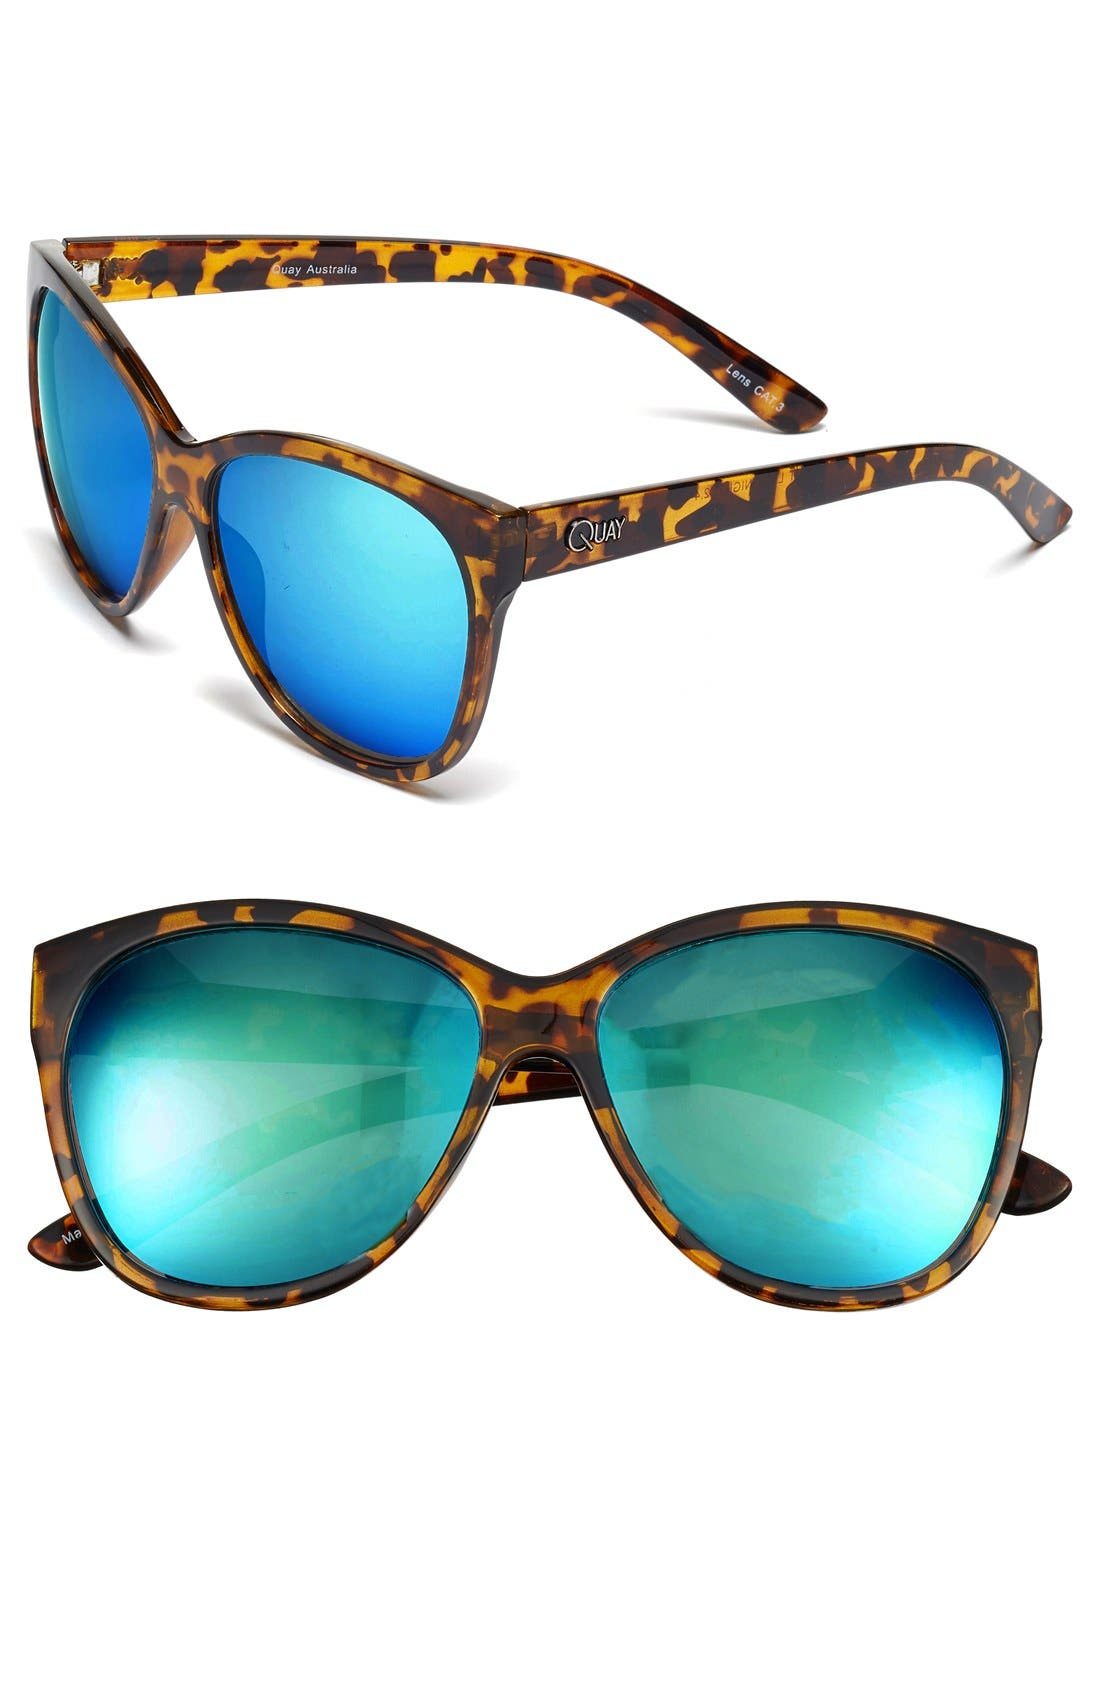 Main Image - Quay Australia 'About Last Night' 59mm Retro Sunglasses